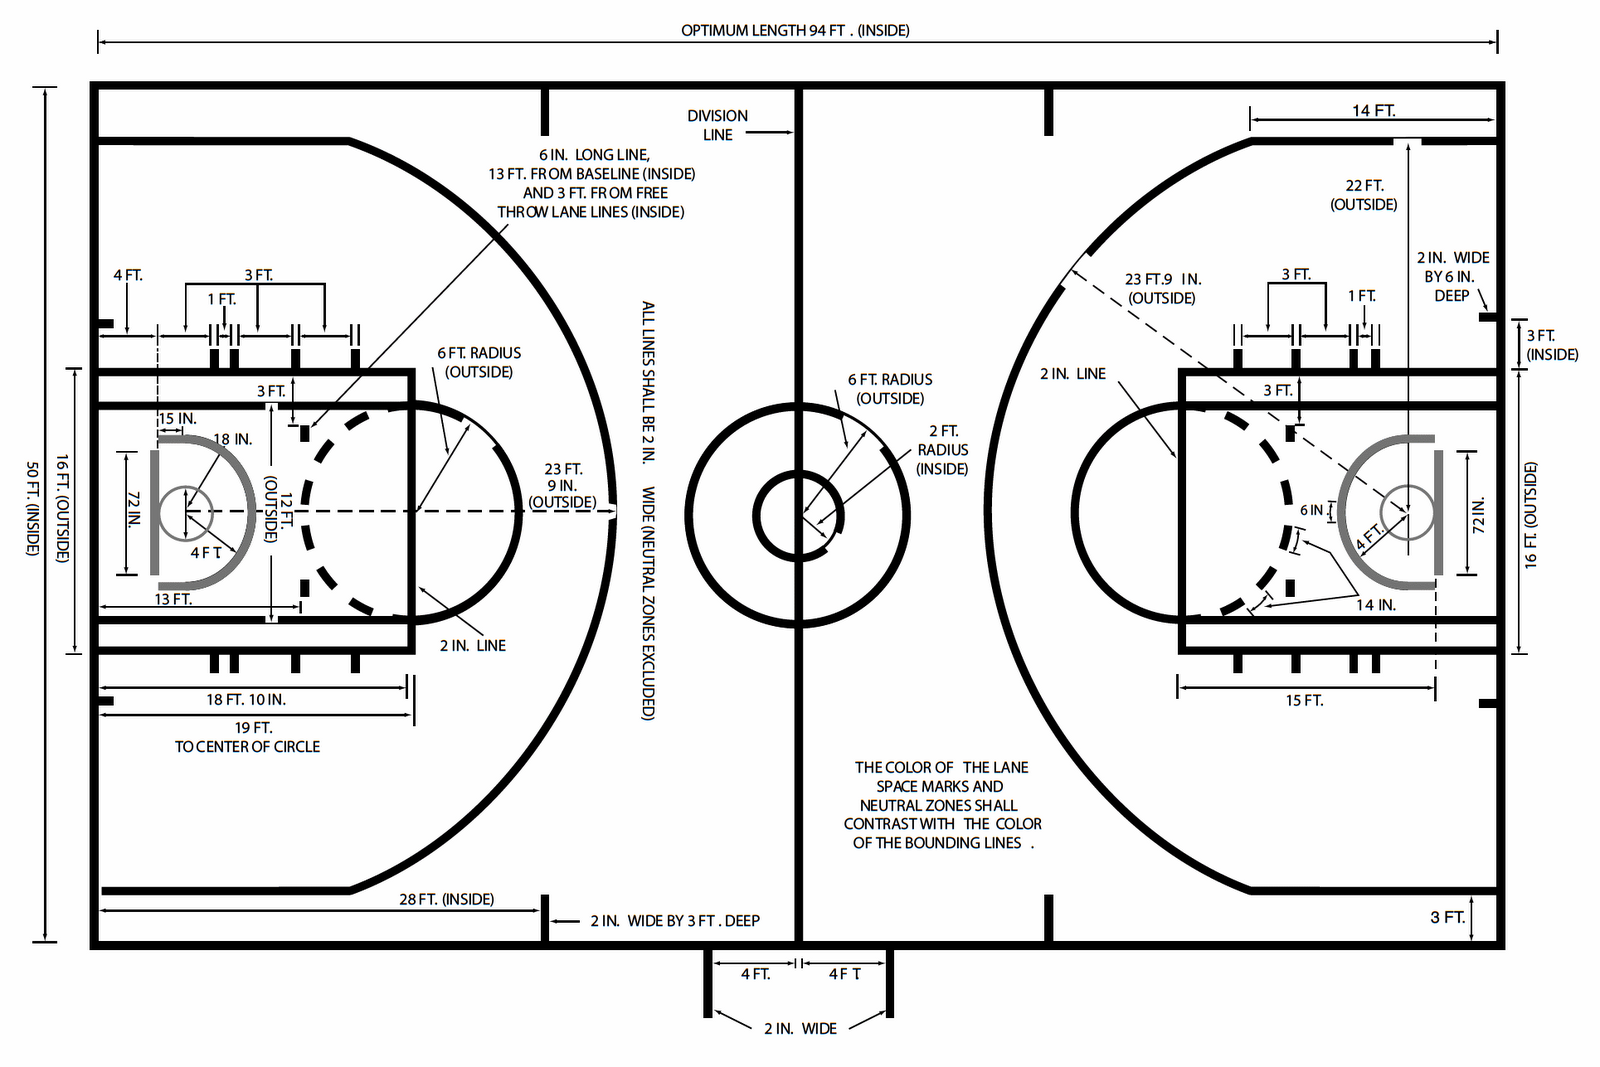 Court Dimensions Nba Basketball Court Size Basketball Court Layout Basketball Court Measurements